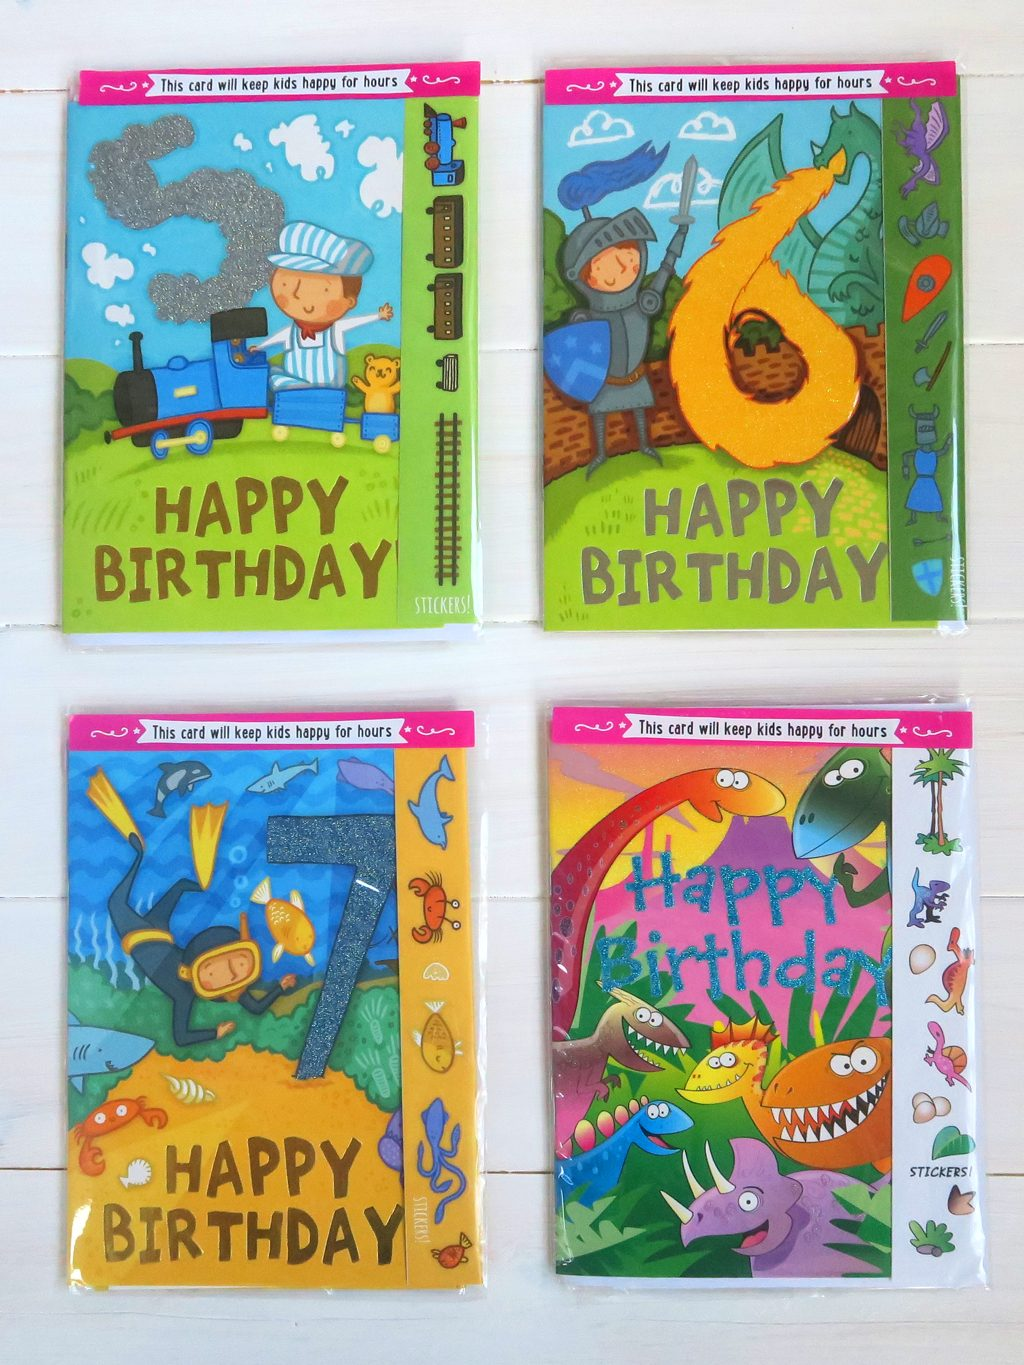 The best birthday cards for children — 4 Cardoo greetings cards